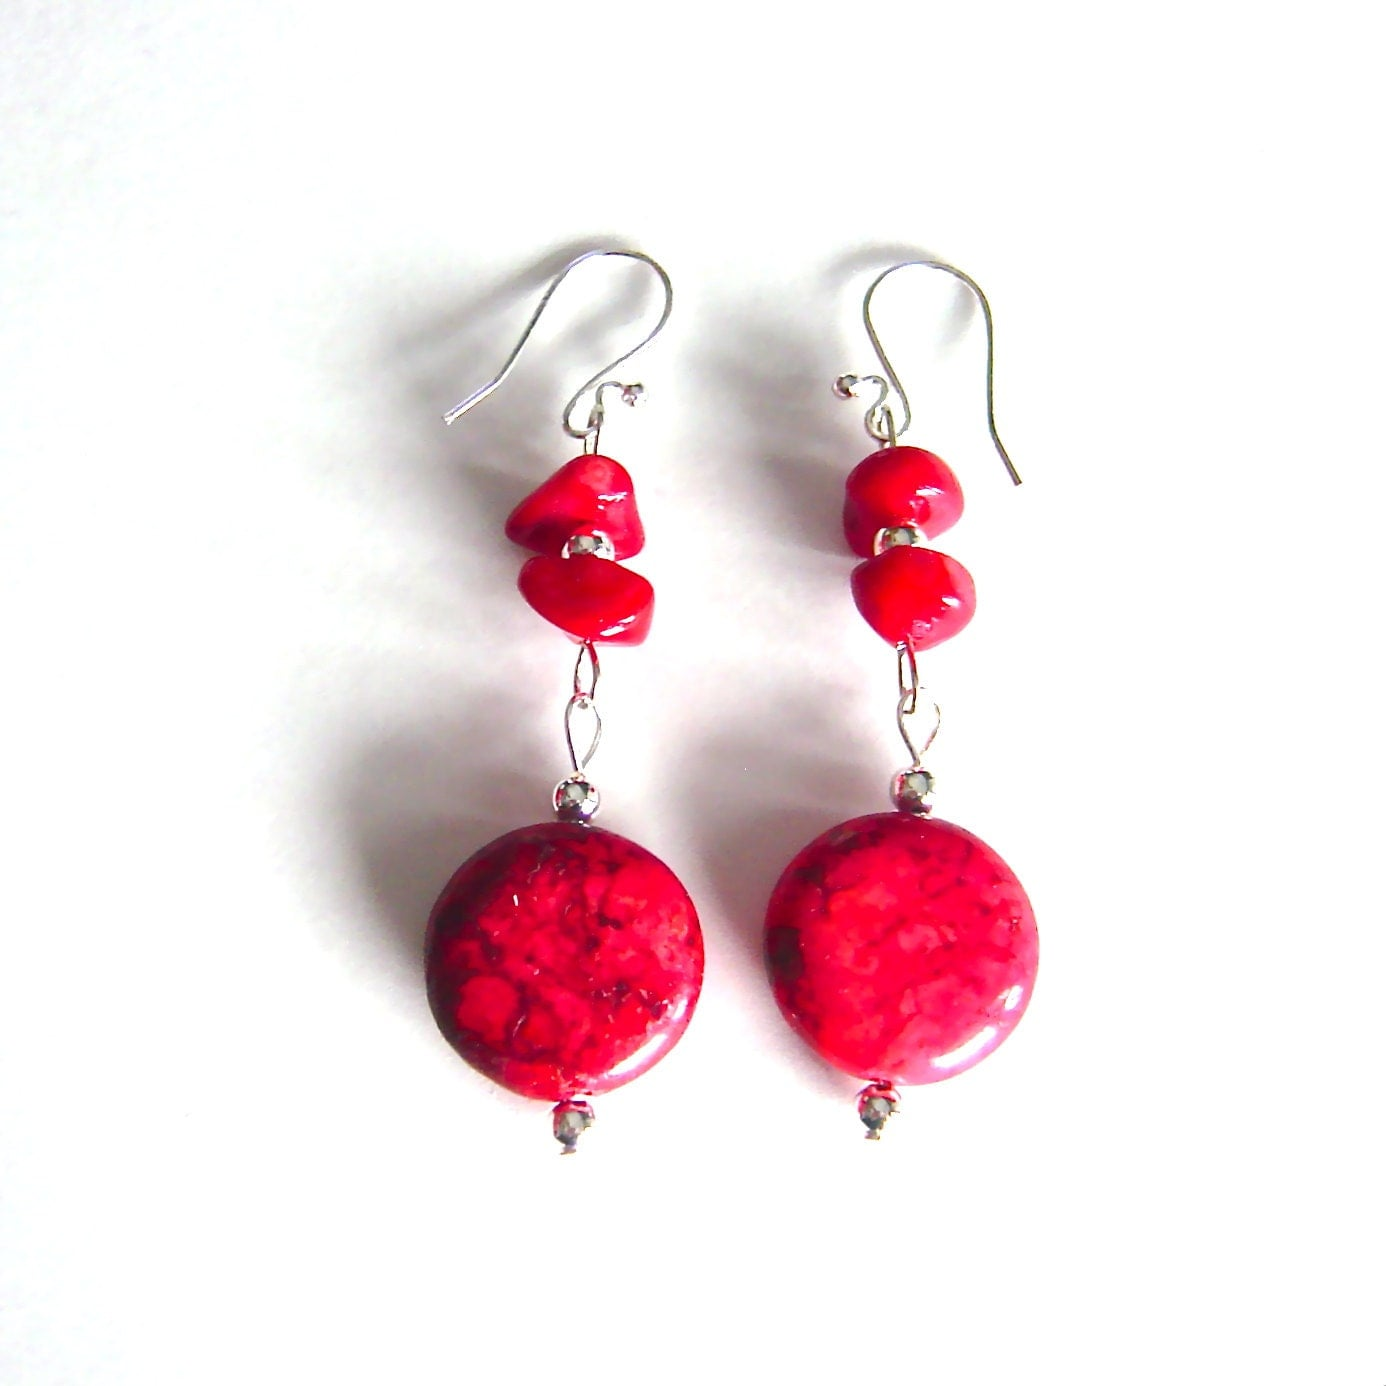 Etsy Natural Stone Earrings